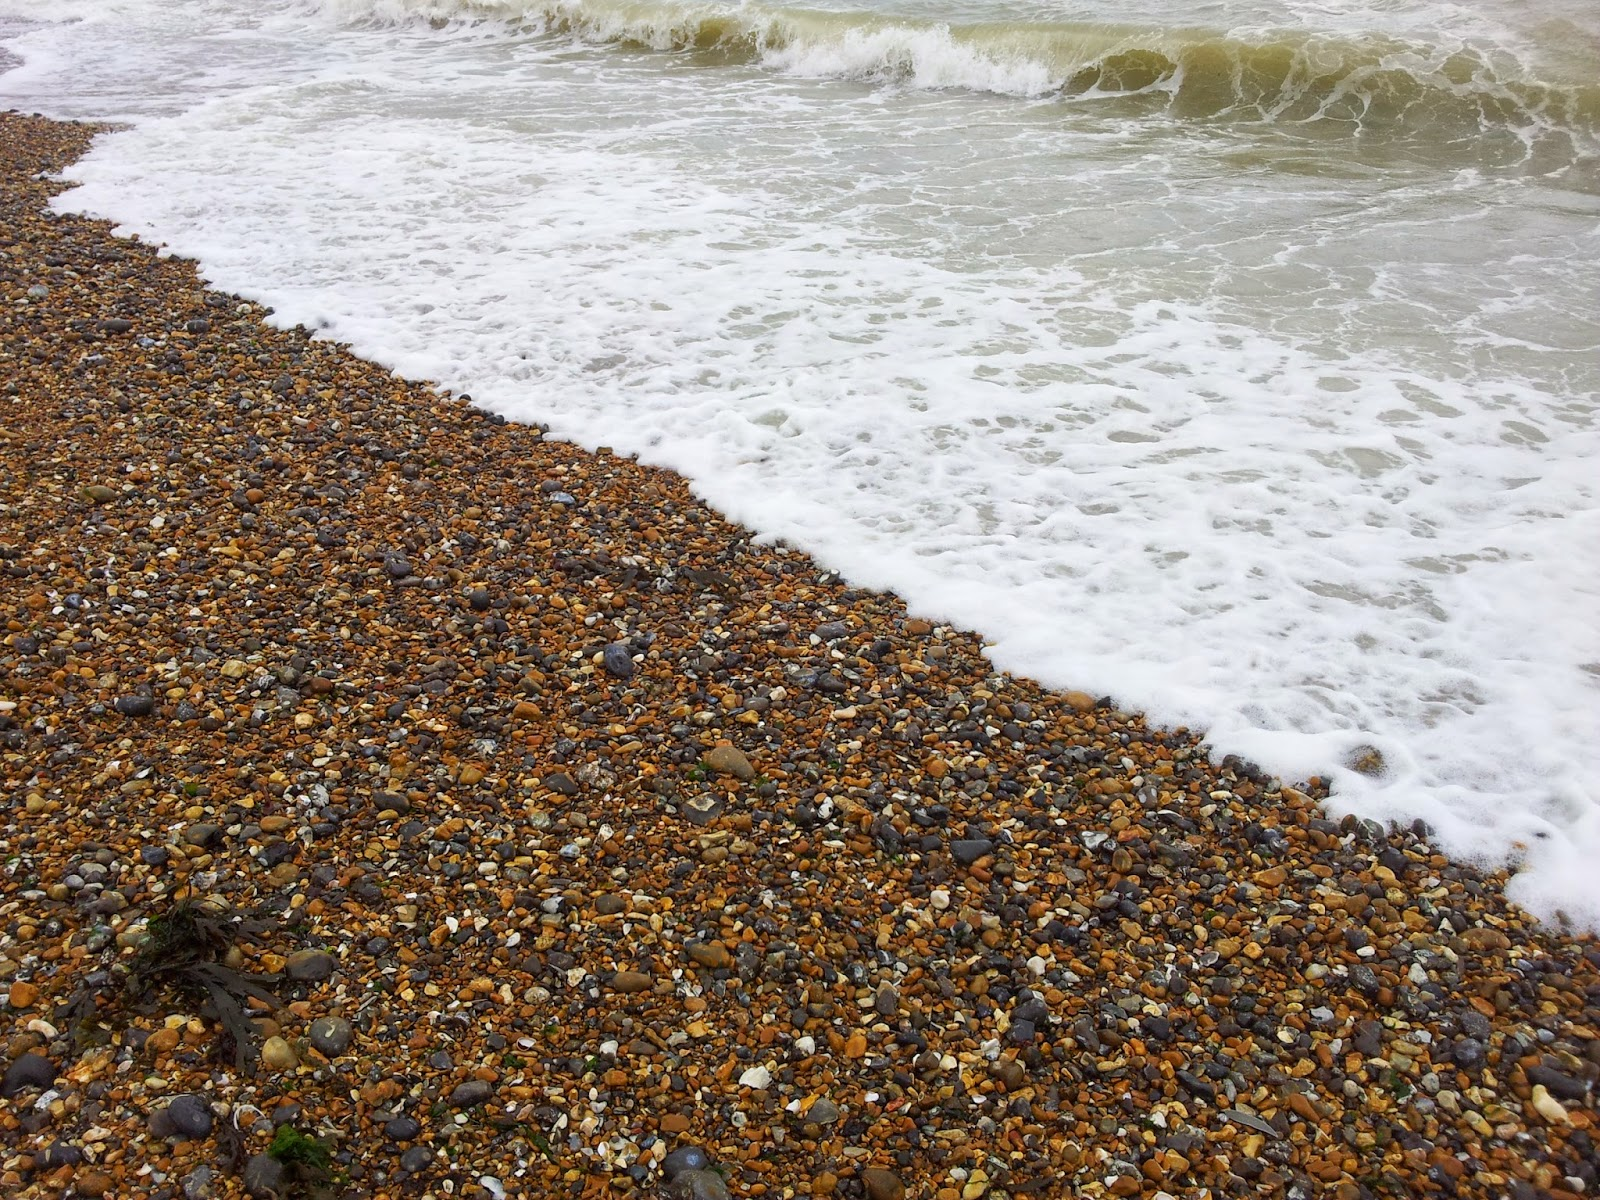 Strand in Seaford, Sussex